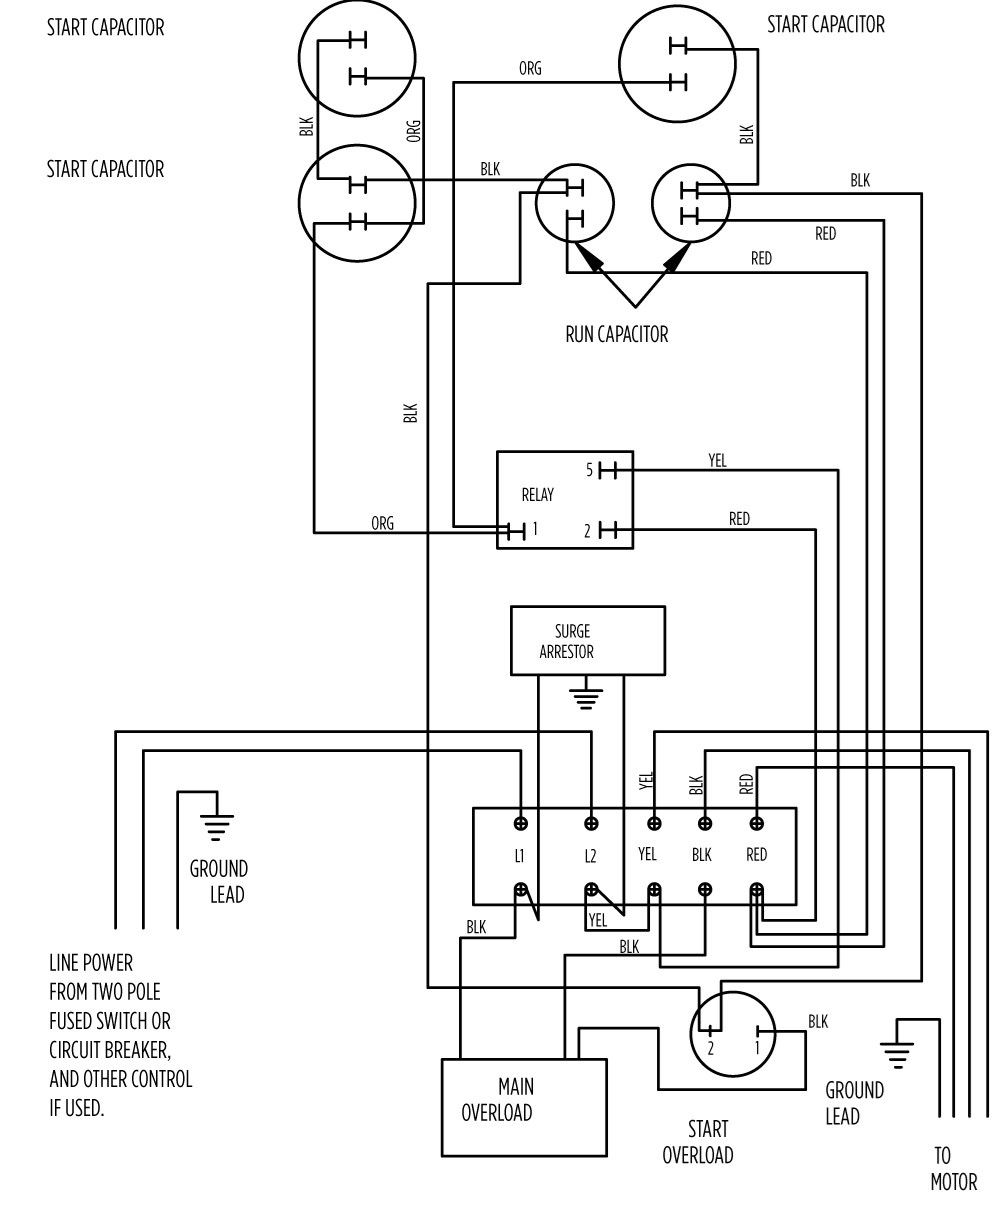 Aim Manual Page 57 Single Phase Motors And Controls Motor Electrical Wiring Diagram 10 Hp Standard 282 202 9210 Or 9230